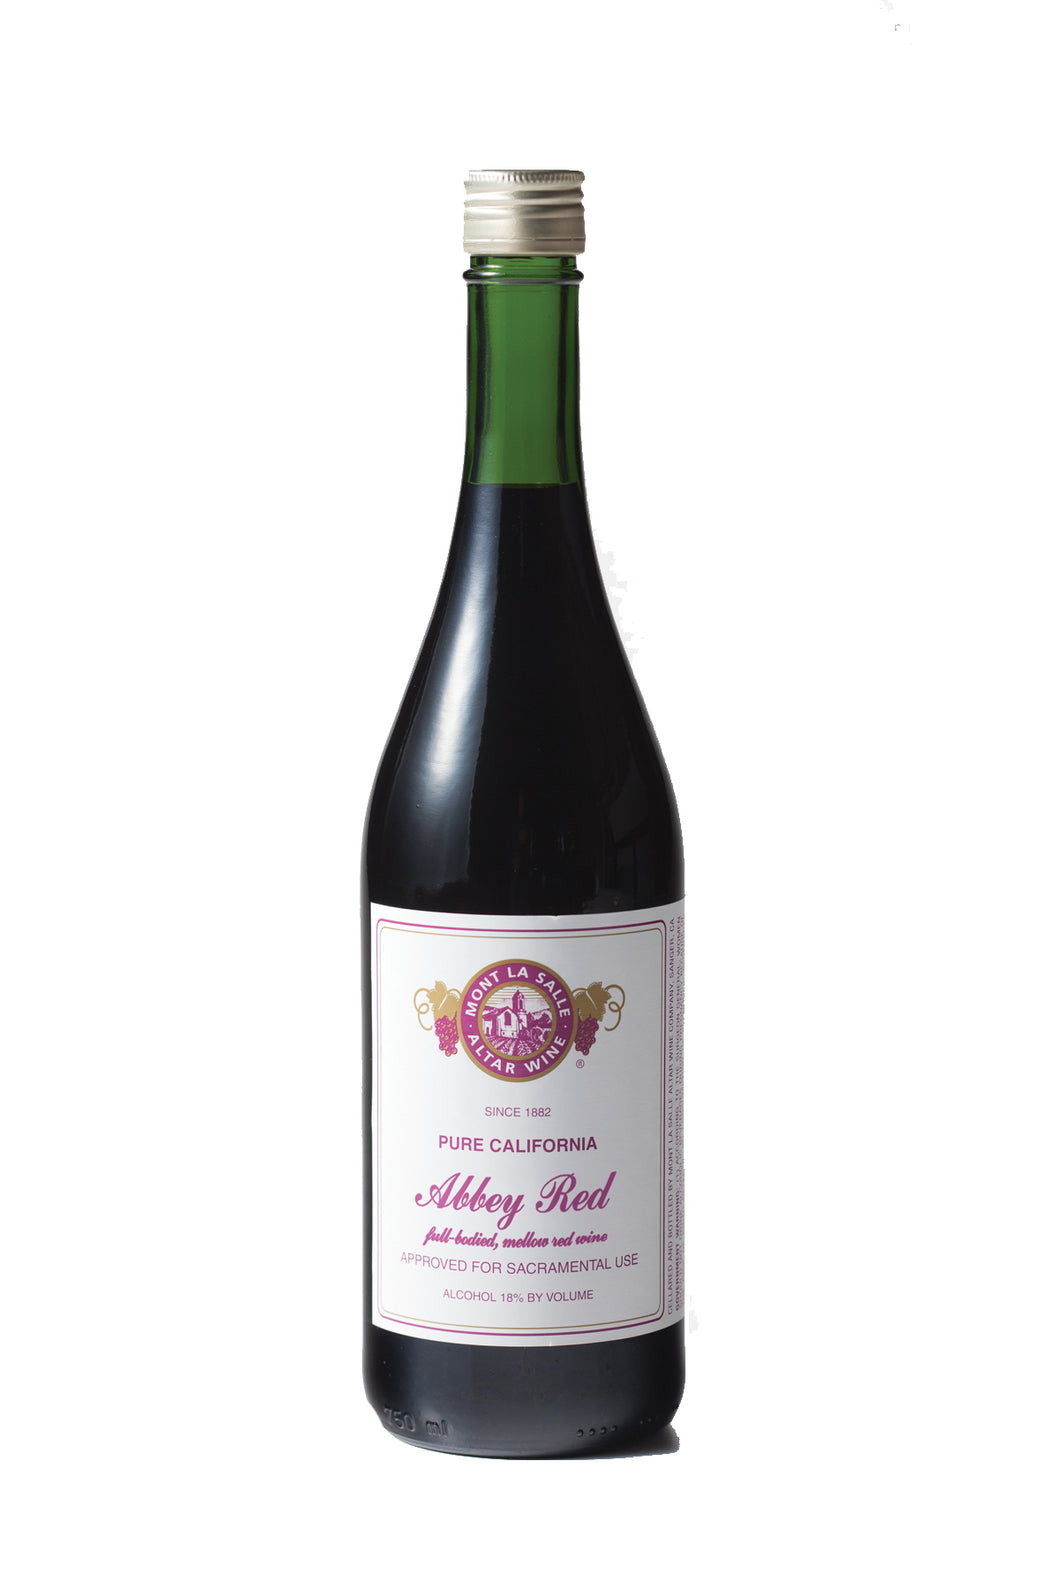 AMBURG - Mont La Salle Abbey Red Wine [12 (750ml) Bottles Per Case]